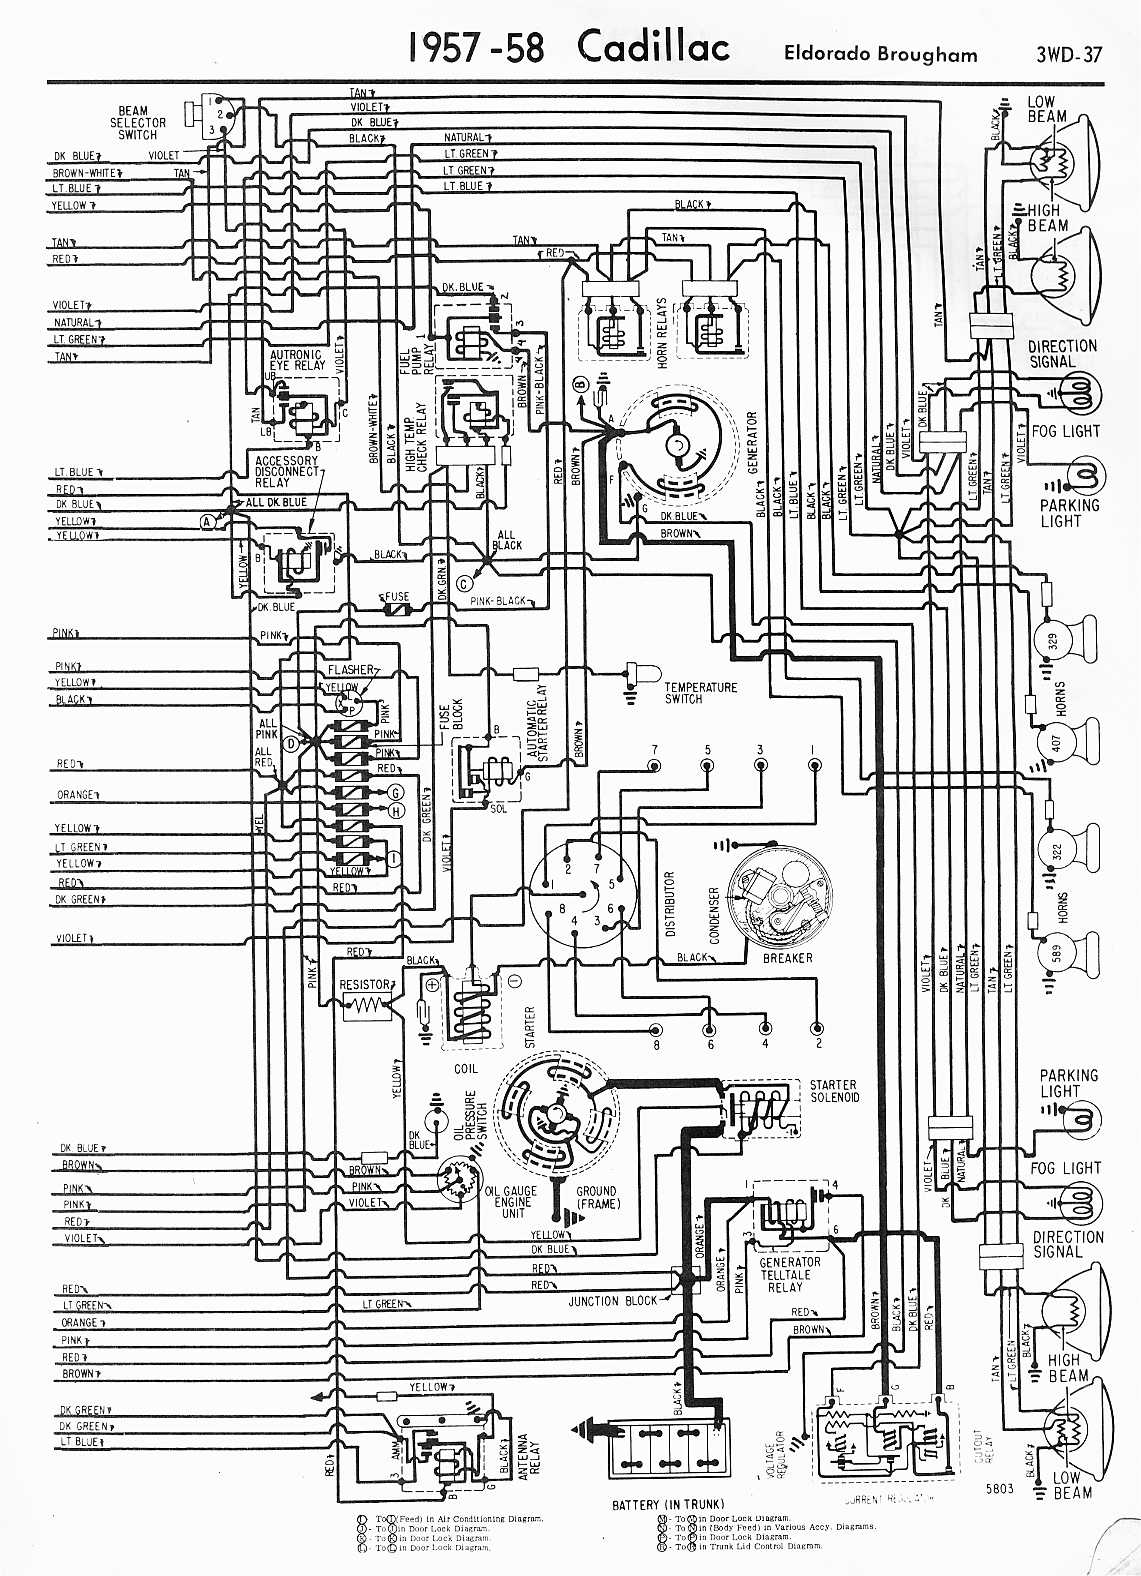 wiring diagram for 2001 cadillac eldorado schematics wiring diagrams u2022 rh parntesis co Wiring Diagram for 2003 Cadillac SLS 1977 Cadillac DeVille Vacuum Diagram